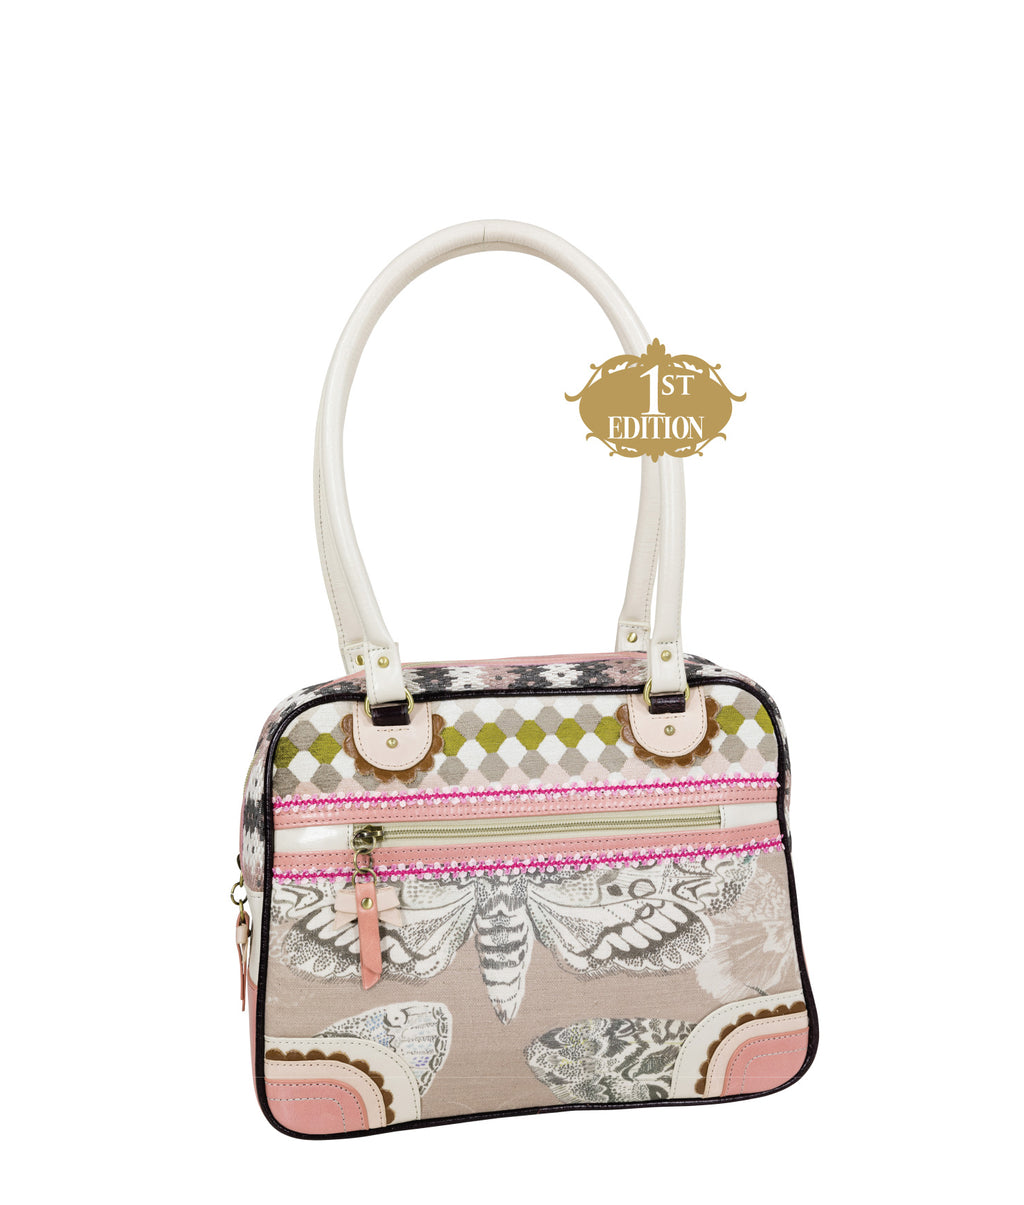 NINA Shoulder Bag - Tea Party - 1st Edition